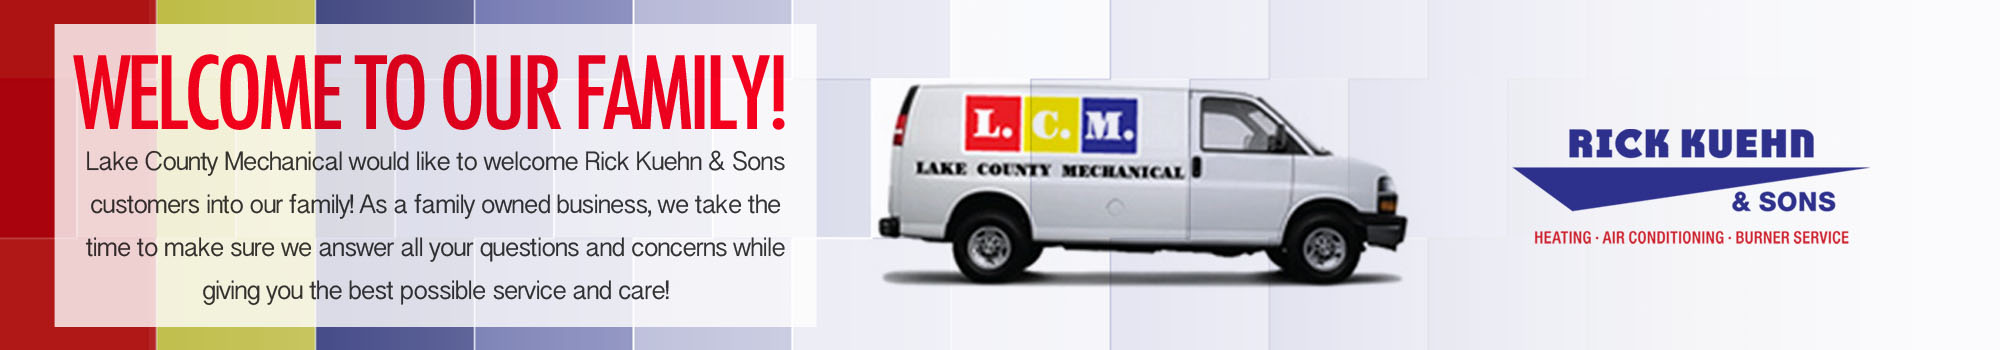 Lake County Mechanical is a family owned AC repair business in Antioch IL.